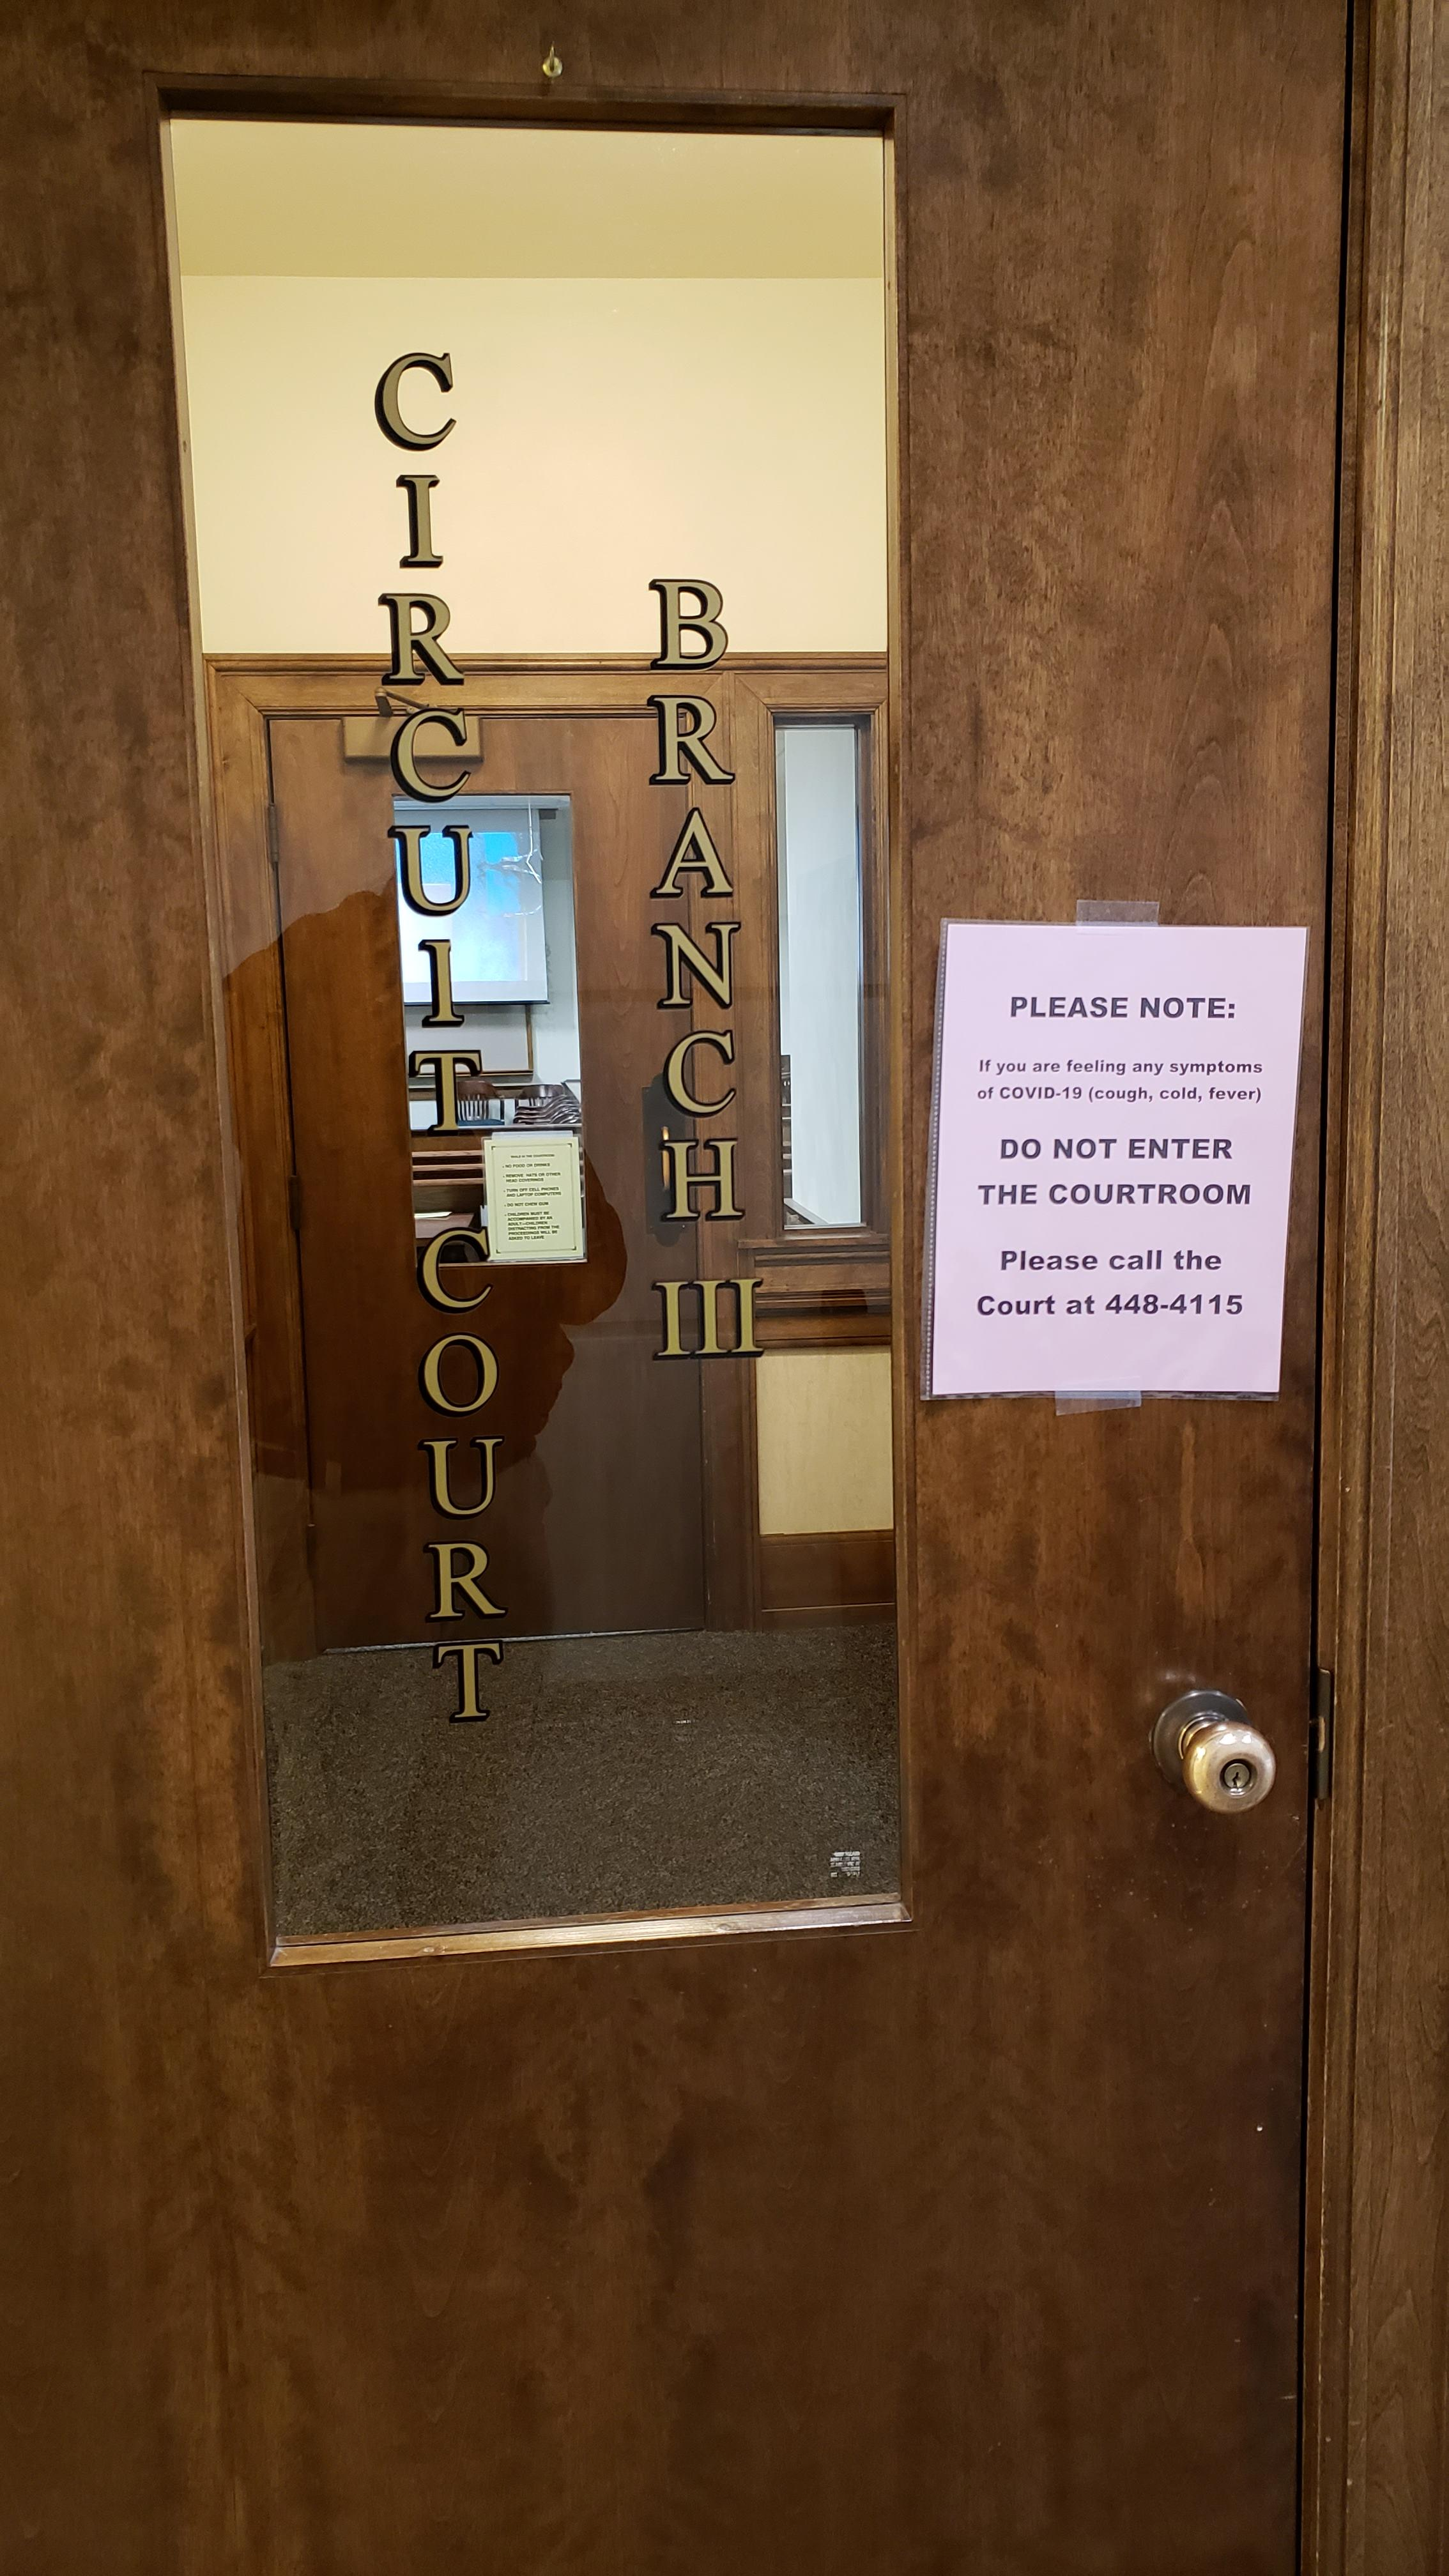 A sign outside a Brown County, Wisconsin, courtroom March 20, 2020, advises people who are feeling sick with coronavirus symptoms not to enter the room. (WLUK/Don Steffens)